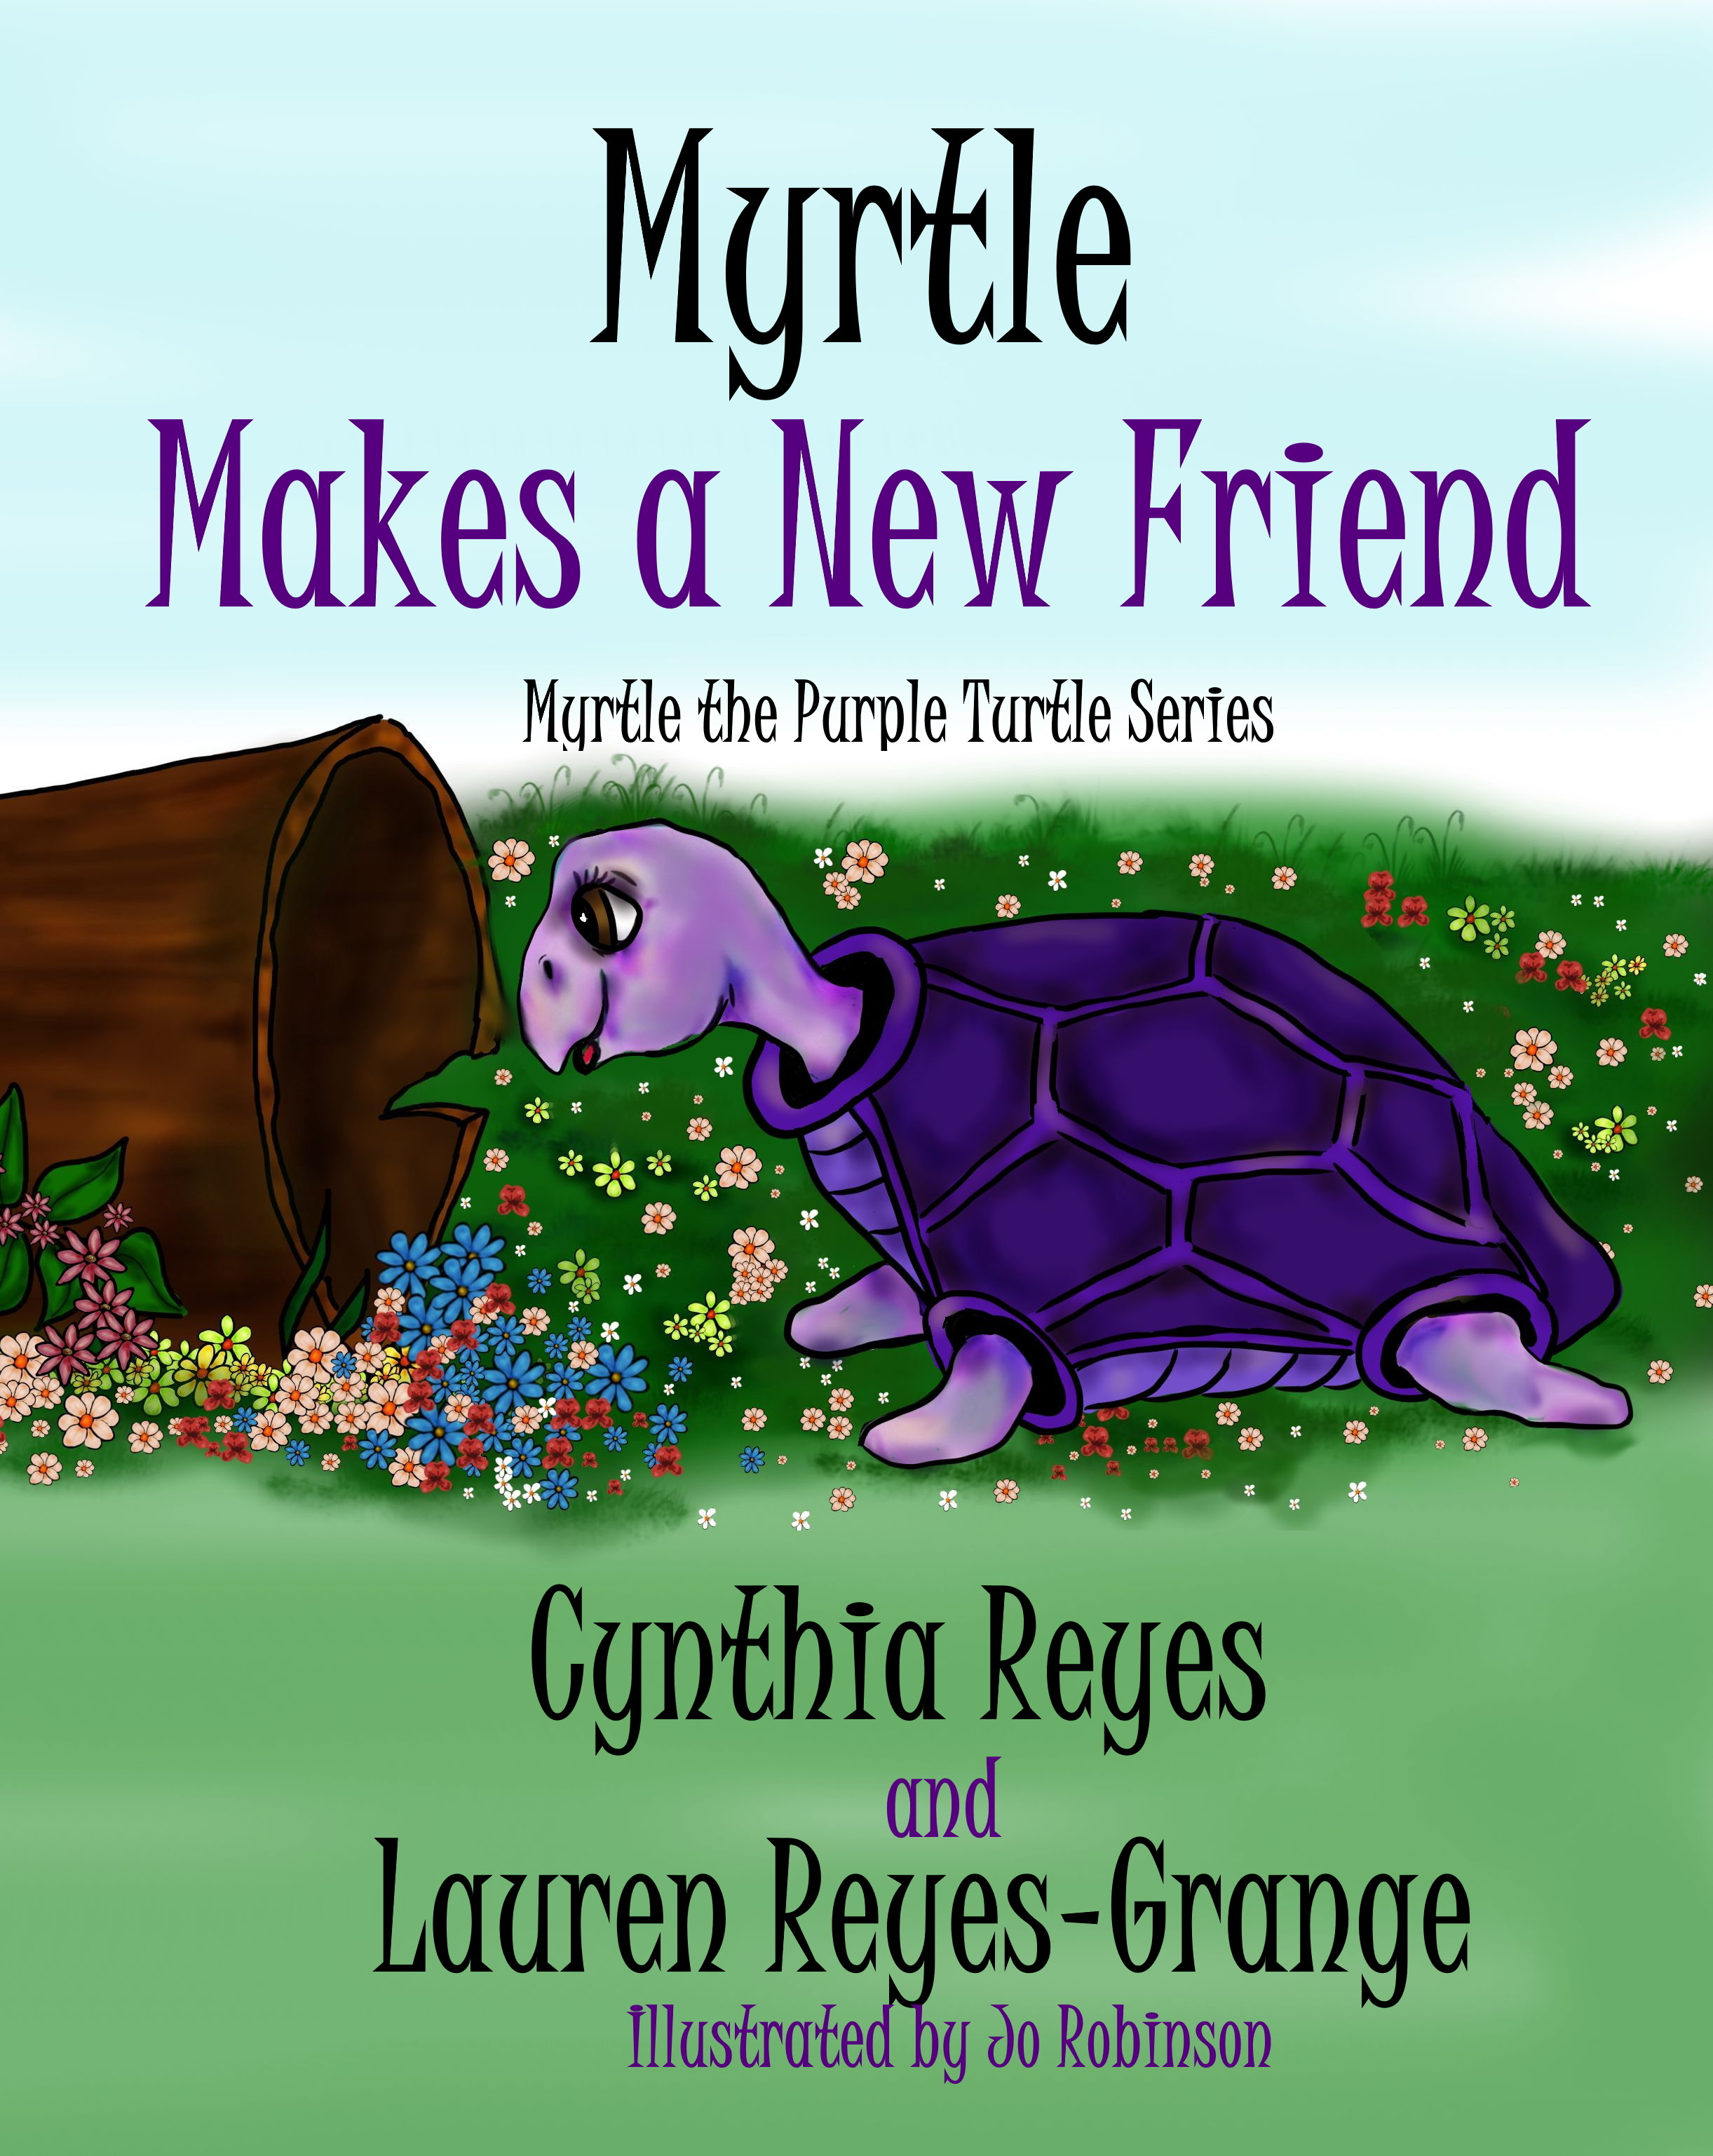 Myrtle Makes a New Friend - Cover Front 3 Sept 2019